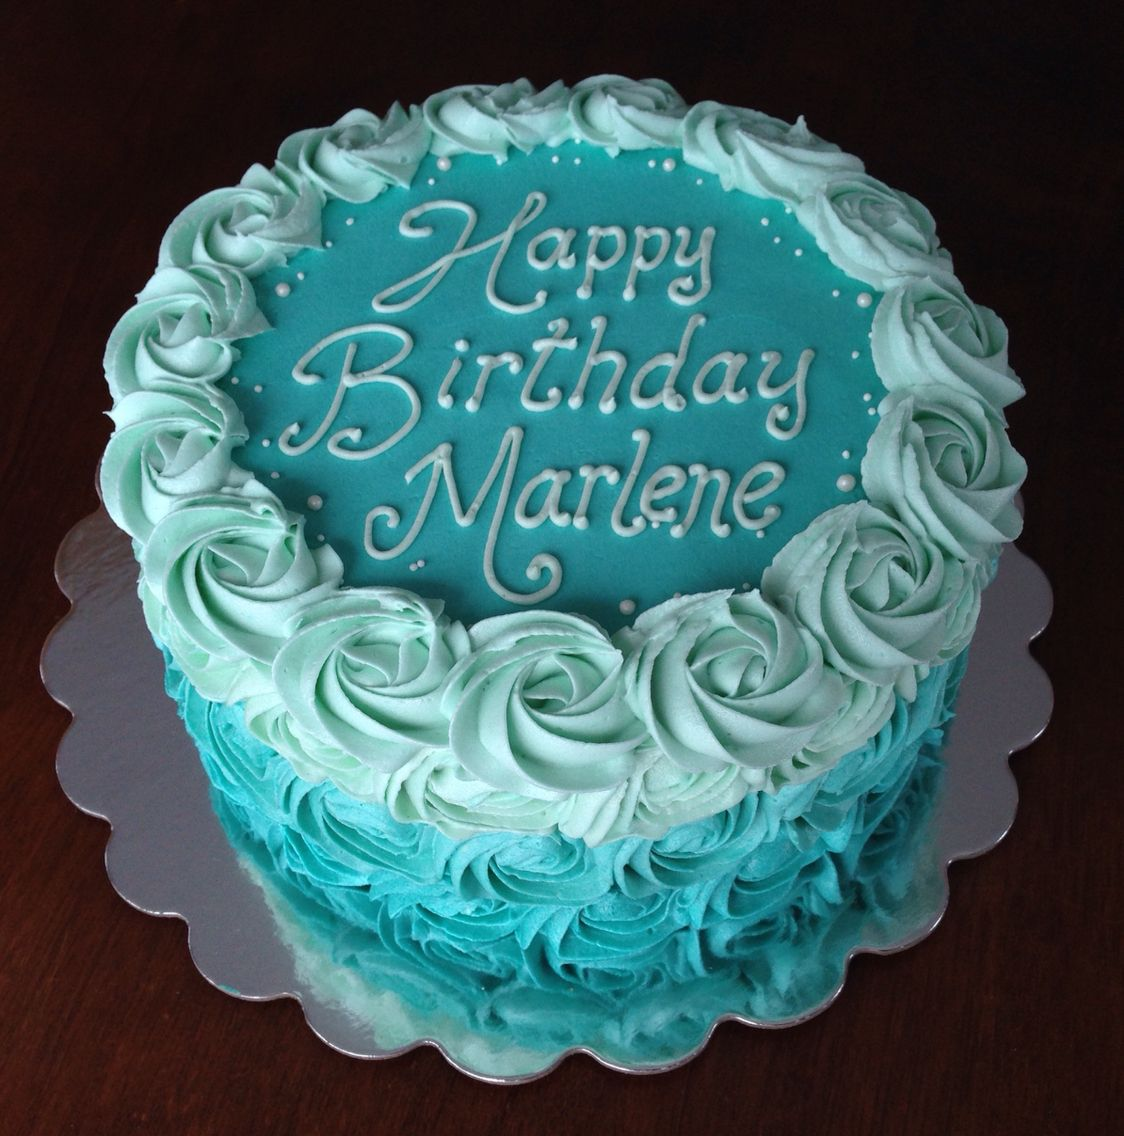 Teal Turquoise Ombre Buttercream Rosette Birthday Cake With